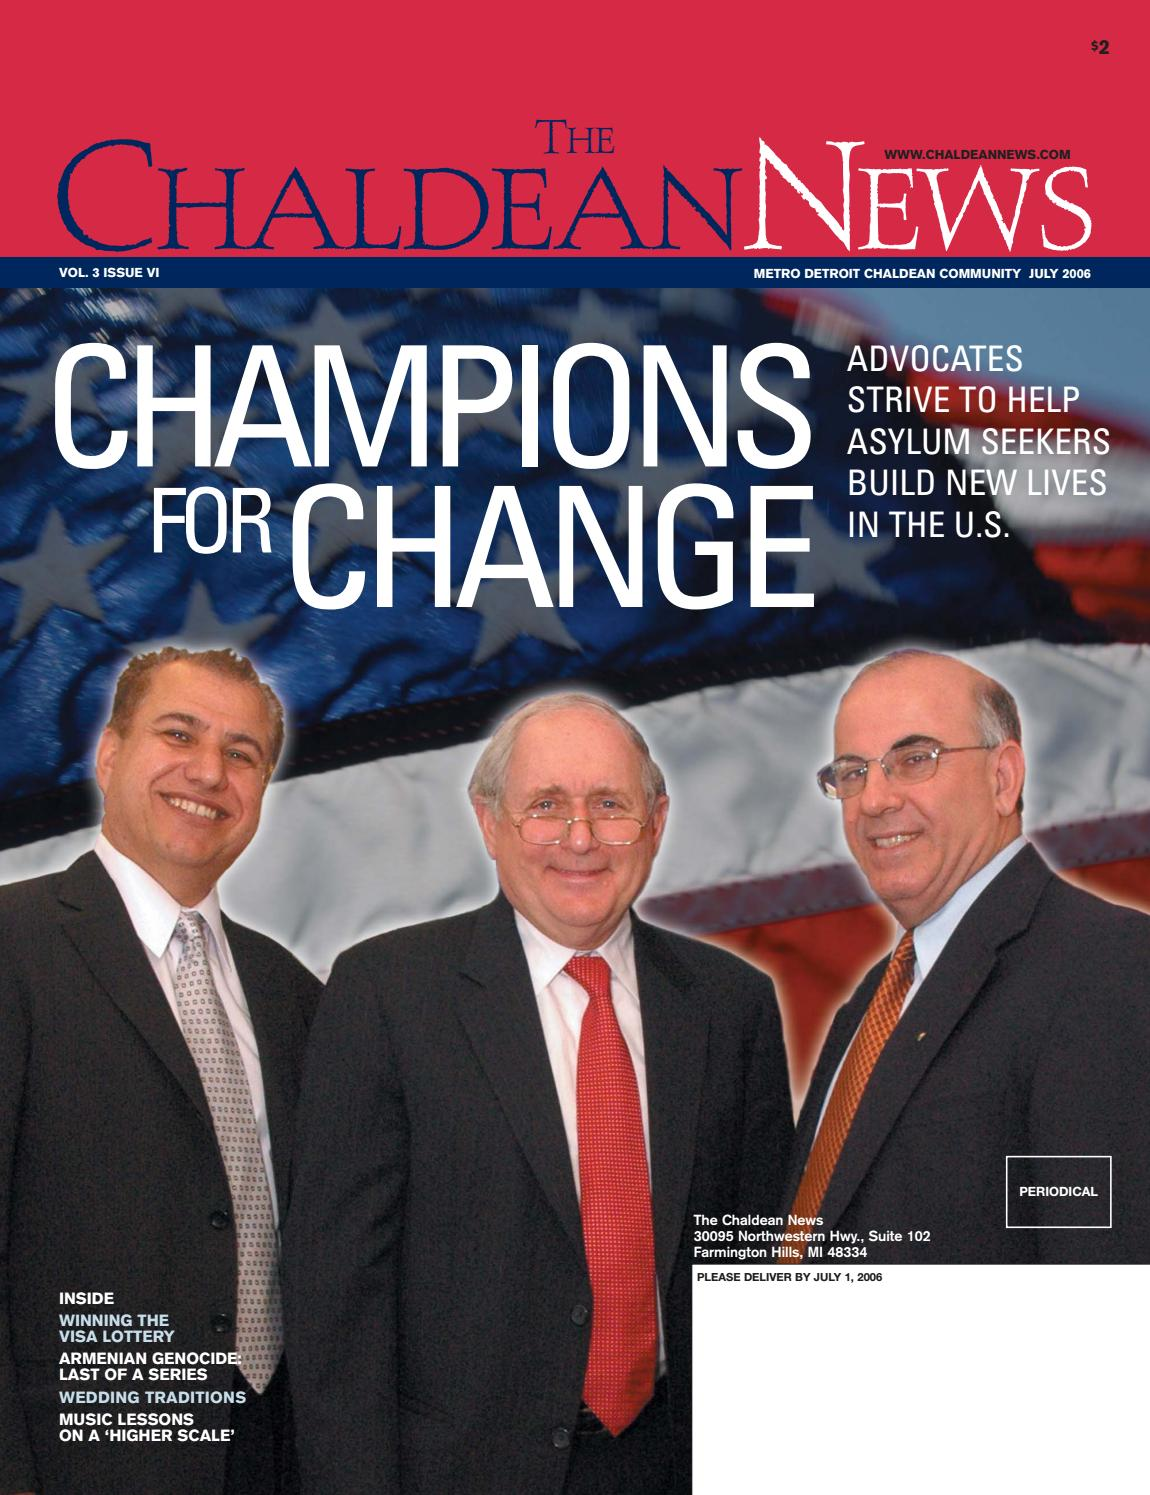 Chaldean News - July 2006 by The Chaldean News - issuu